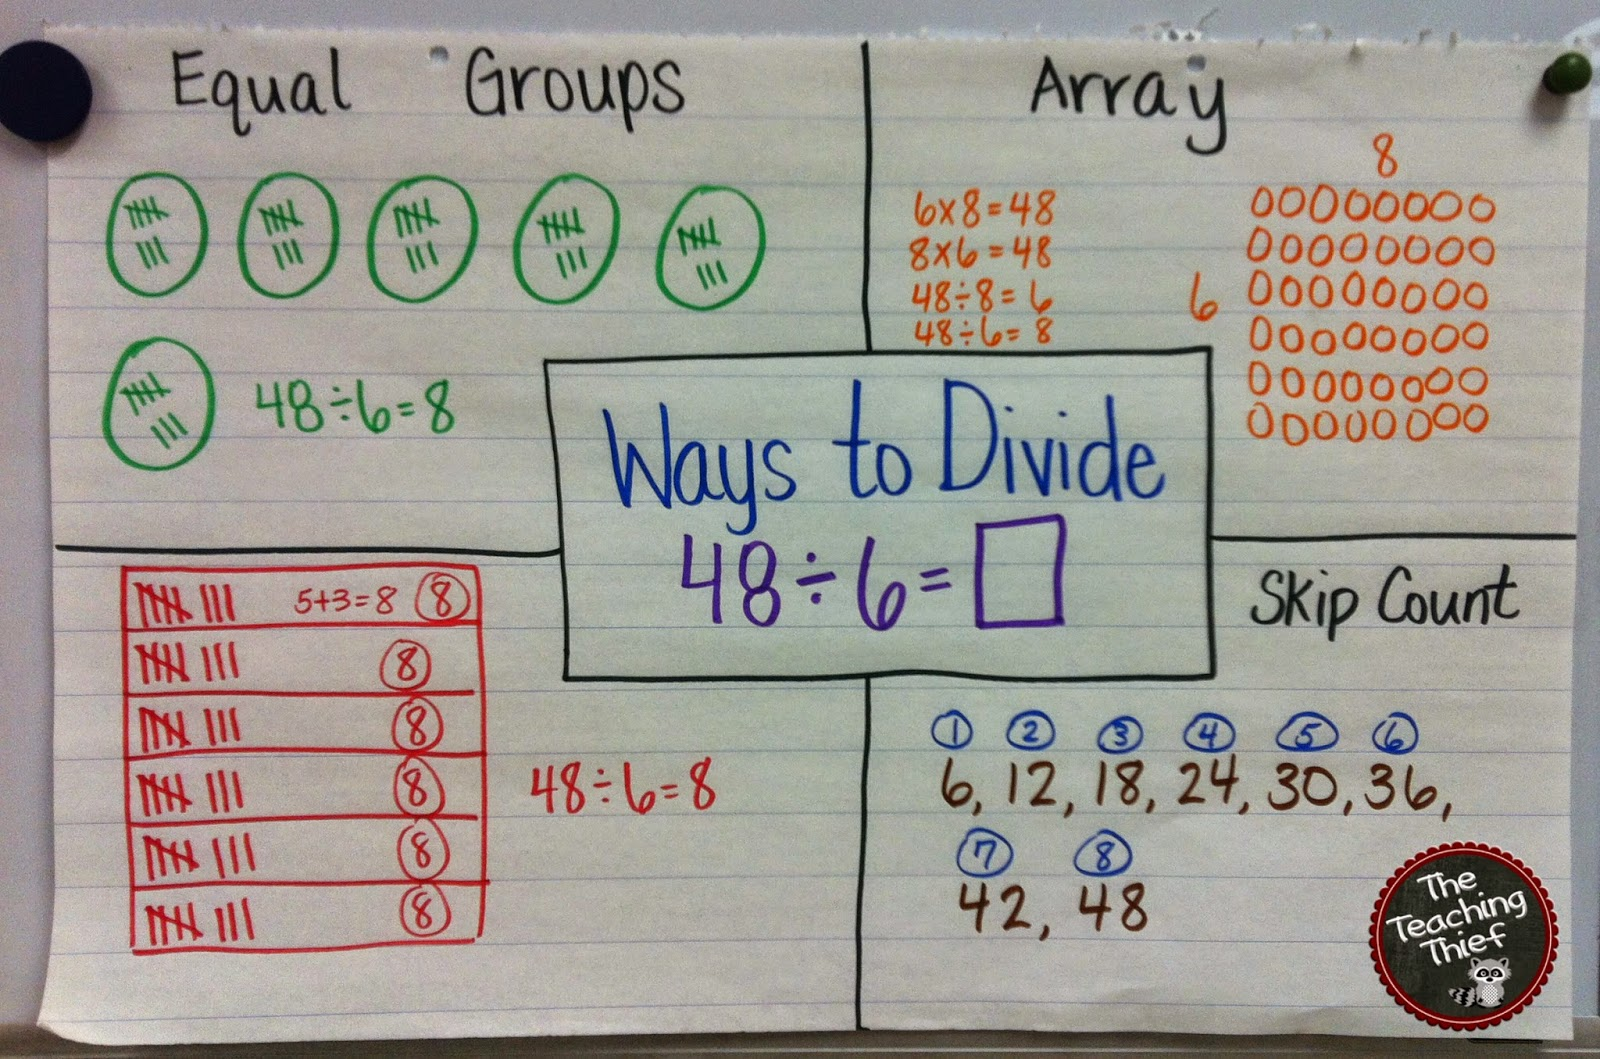 Worksheets 2 Digit Division Anchor Chart the teaching thief anchor charts multiplication division july 15 2014